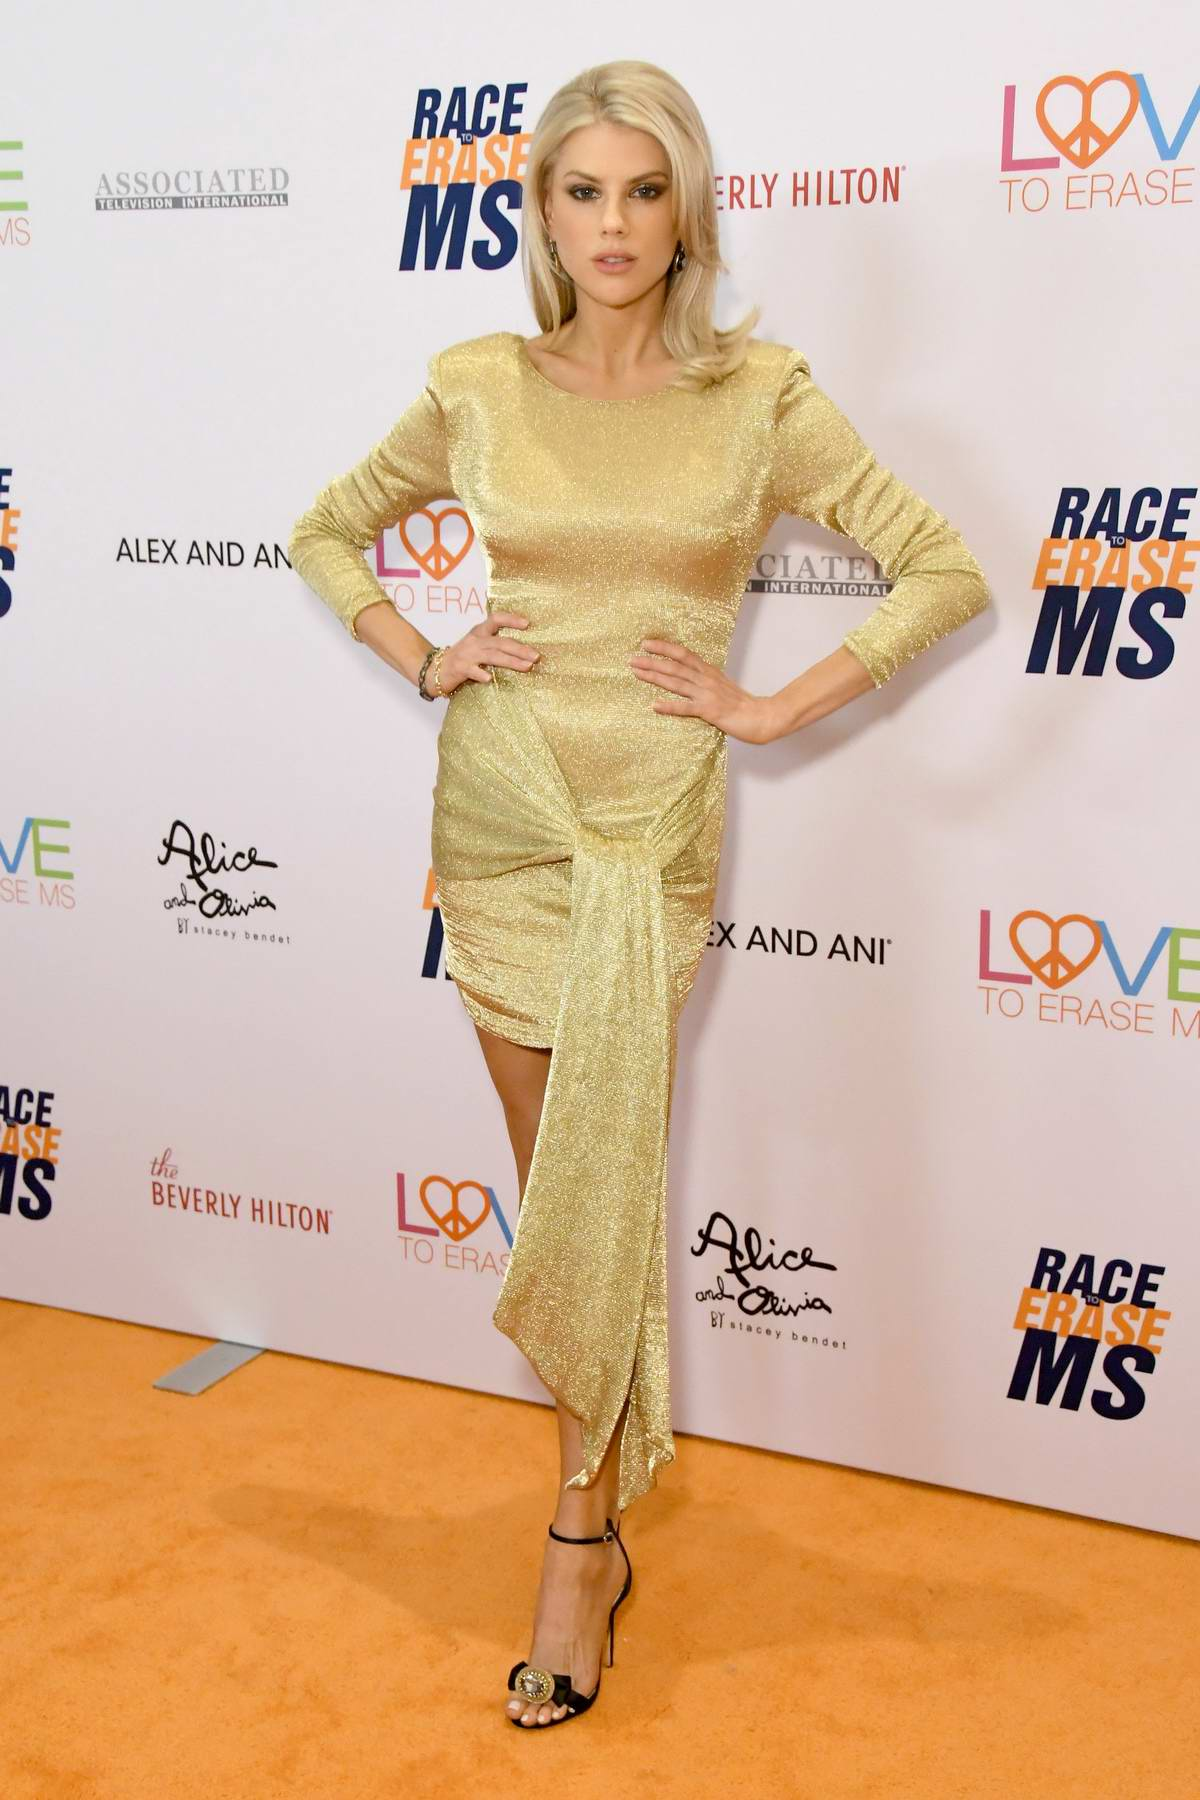 Charlotte McKinney attends the 26th Annual Race to Erase MS GALA held at the Beverly Hilton Hotel in Beverly Hills, Los Angeles